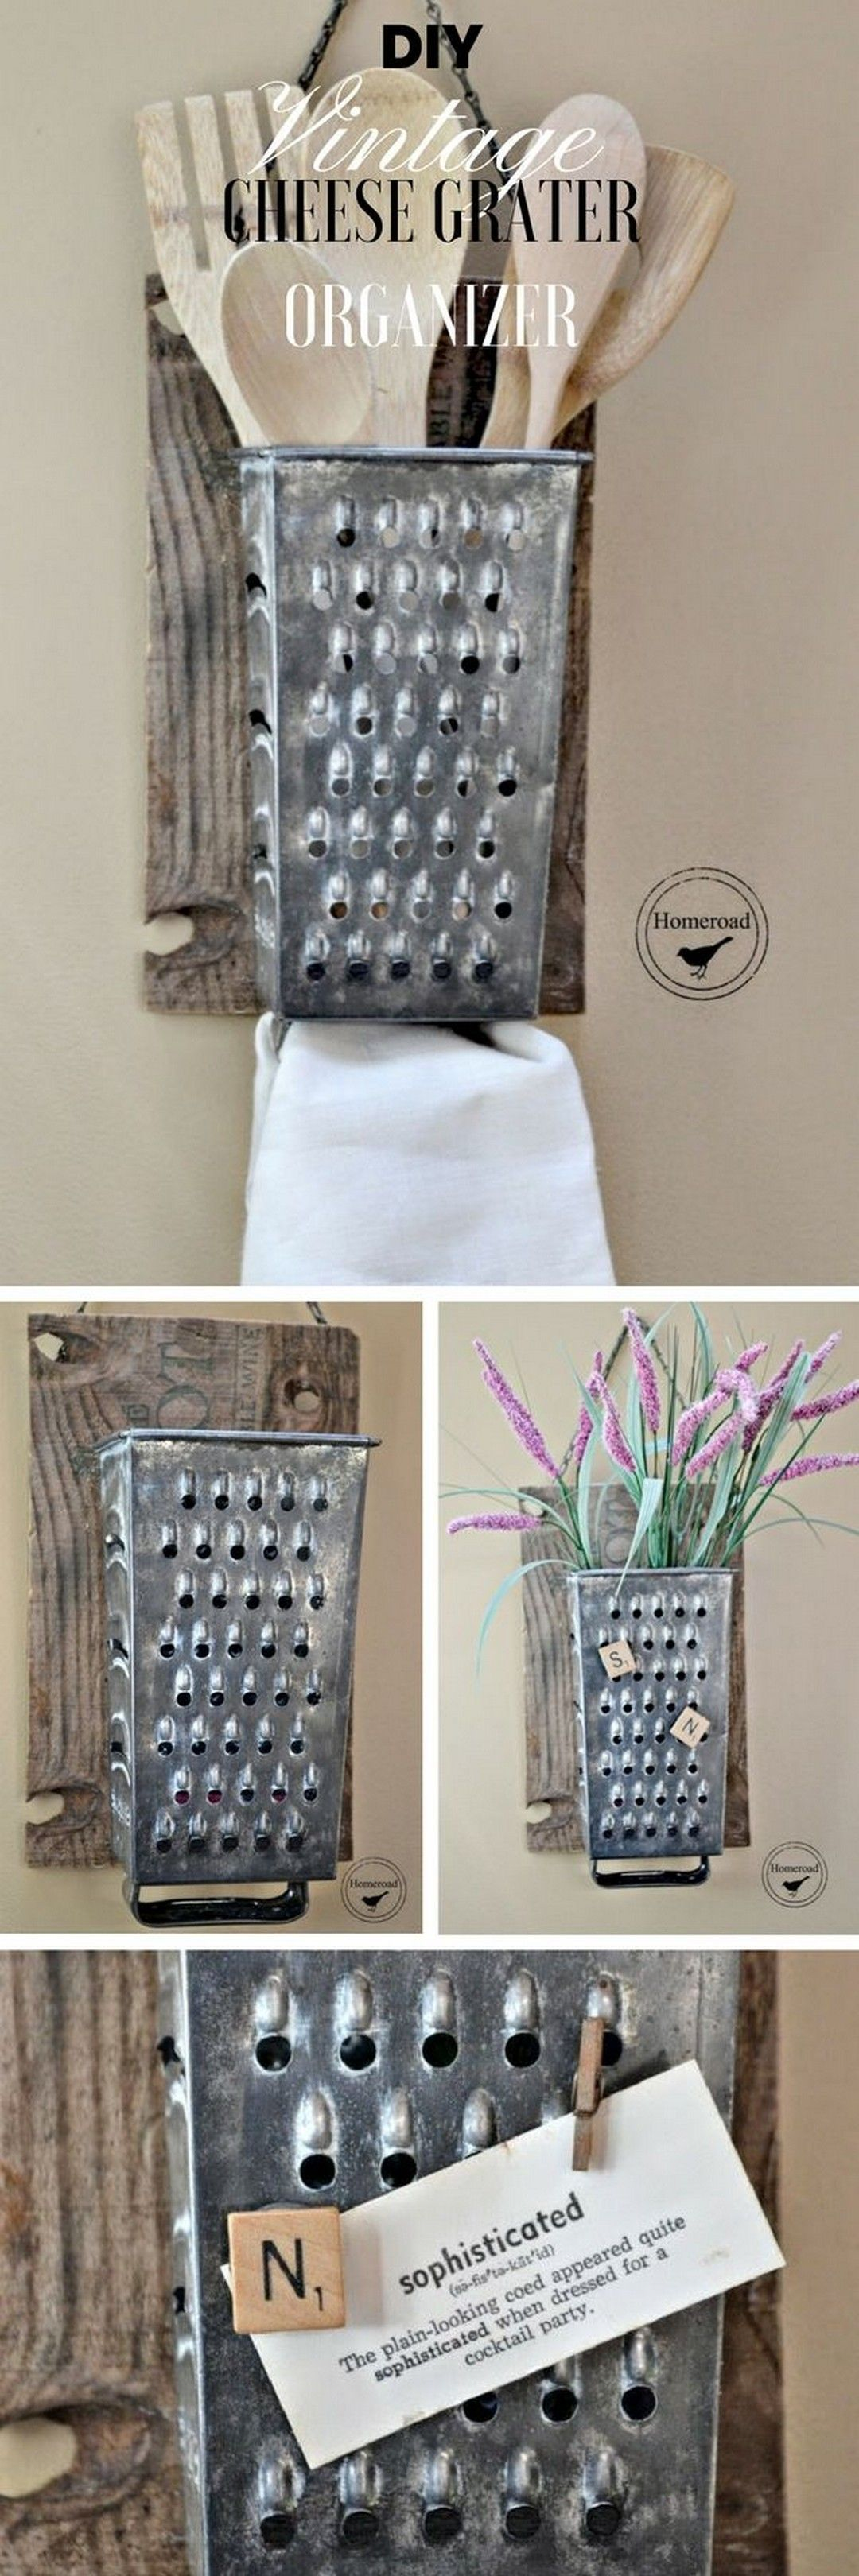 image vintage kitchen craft ideas. Check Out The Tutorial: Vintage Cheese Grater Organizer Industry Standard Design Image Kitchen Craft Ideas I